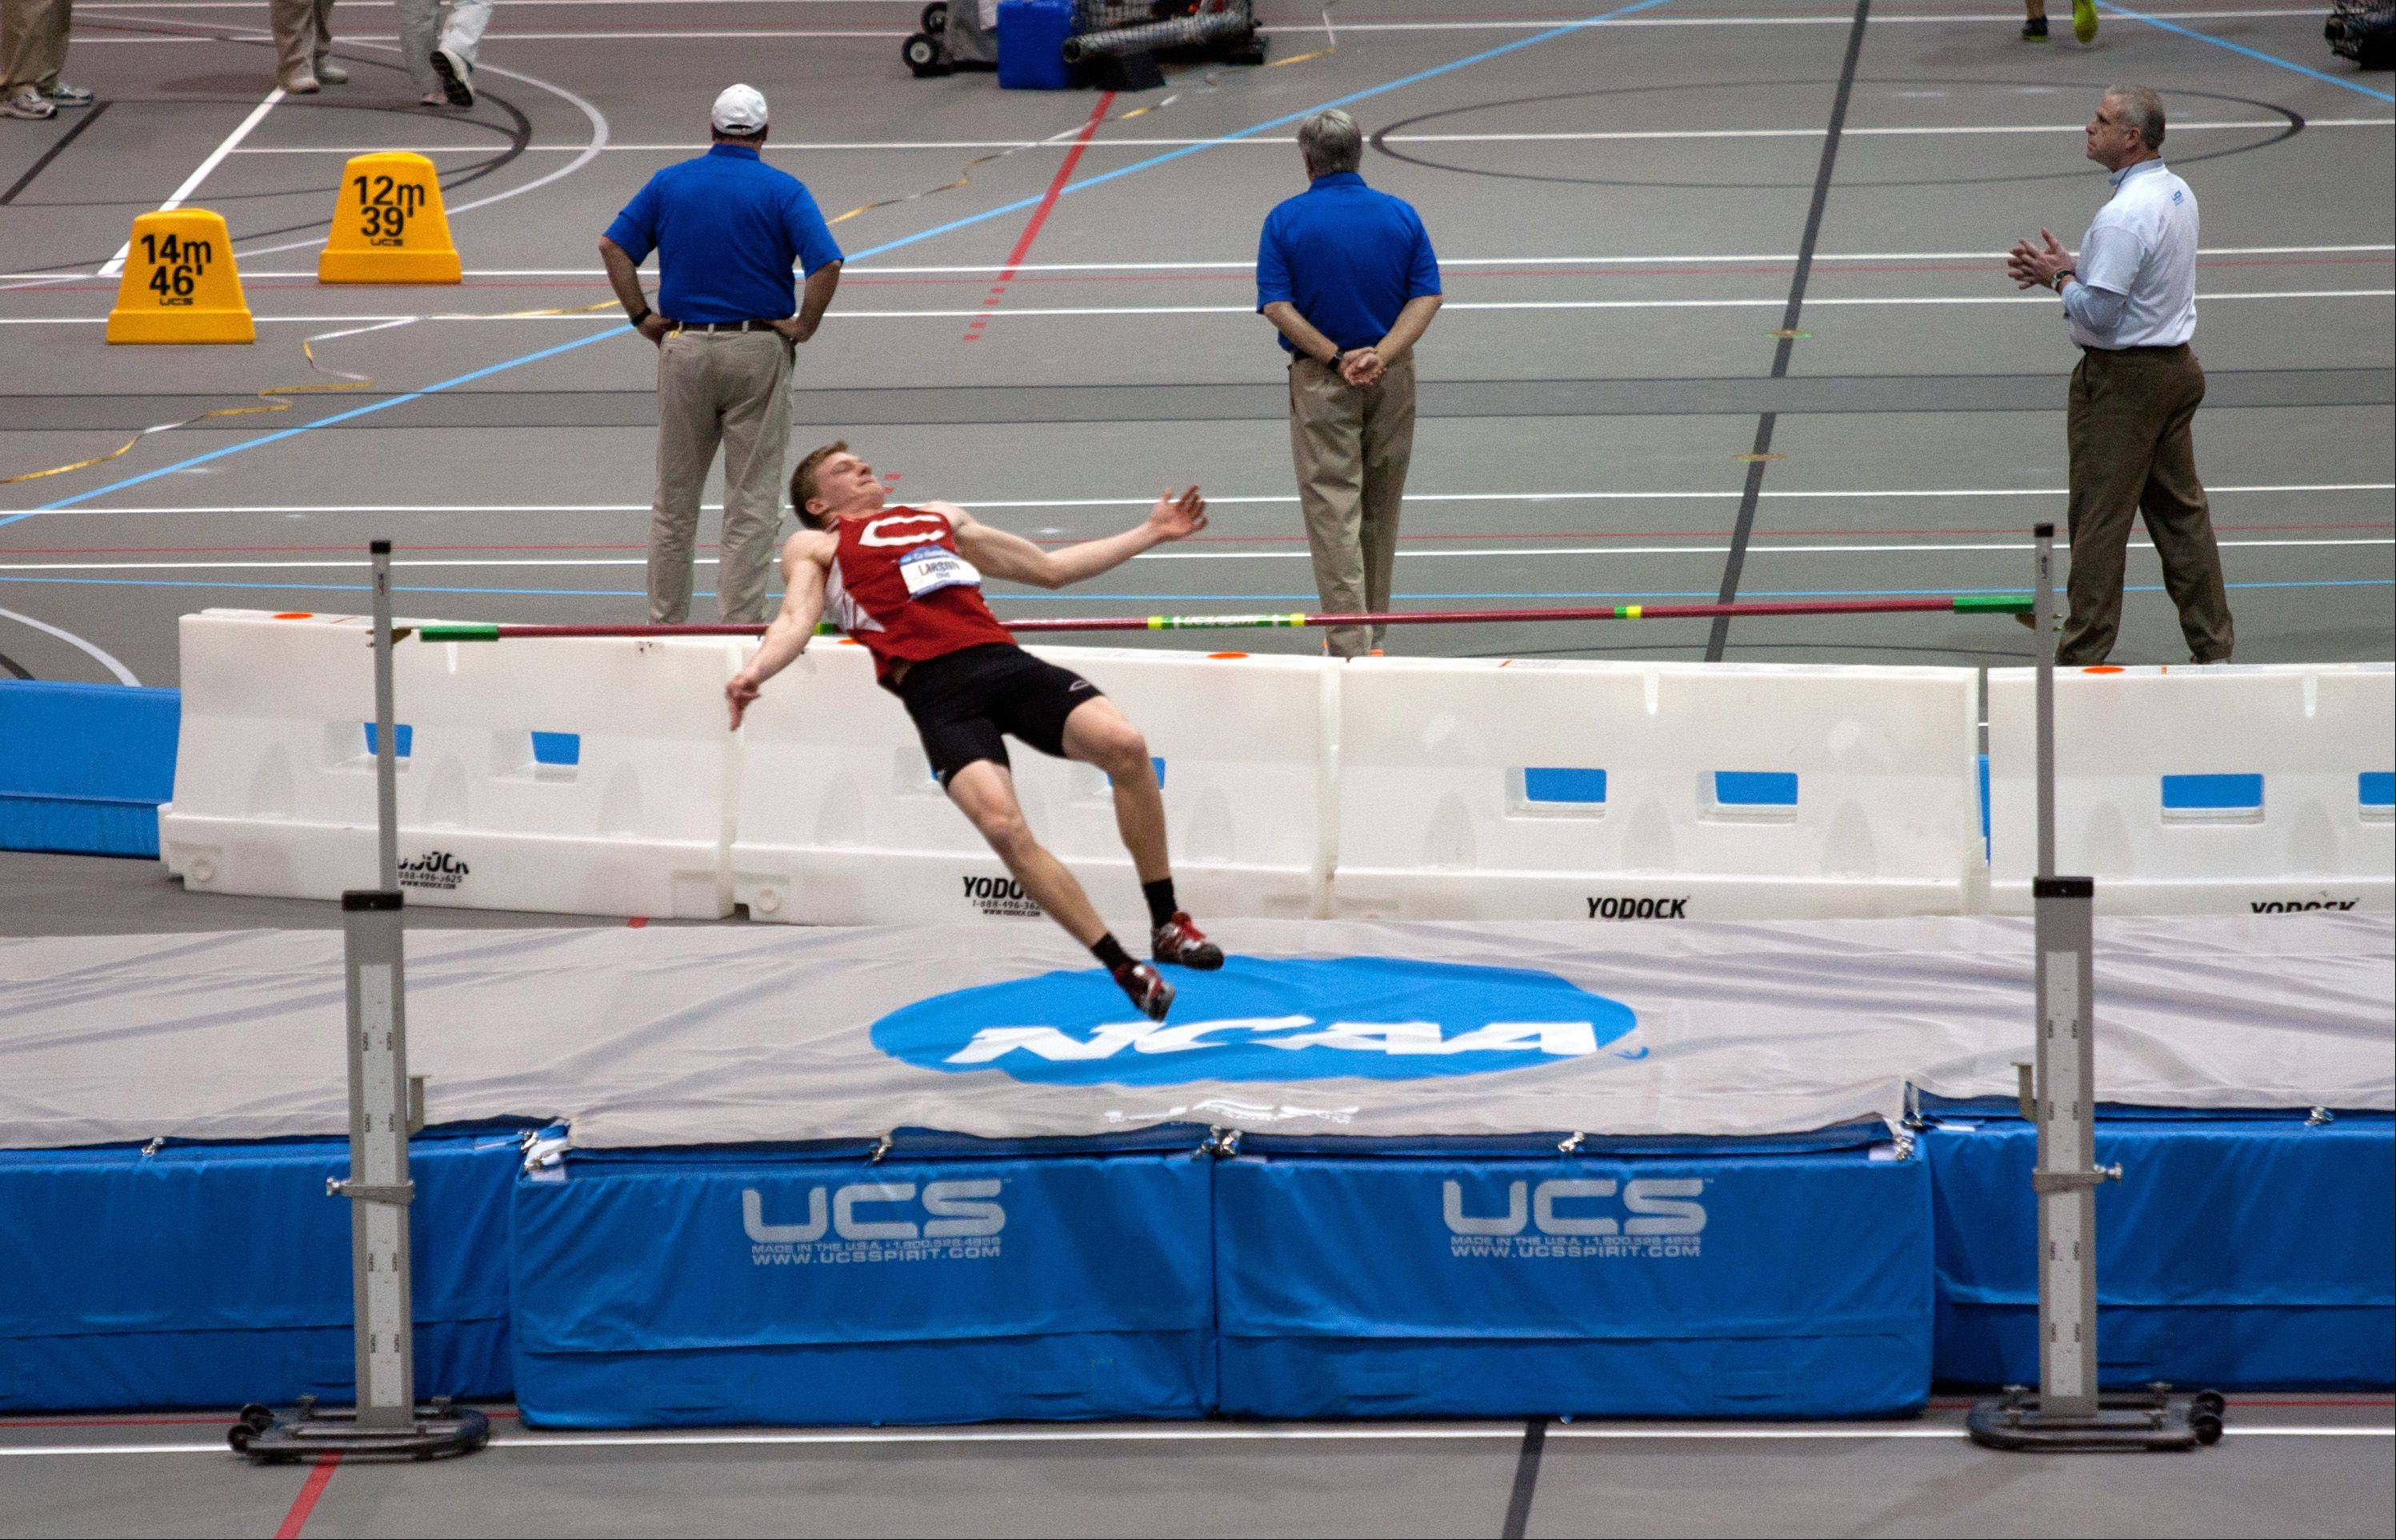 The men's heptathlon high jump winner at the NCAA Division III Indoor Track and Field Championships was Eric Larson of Central College.